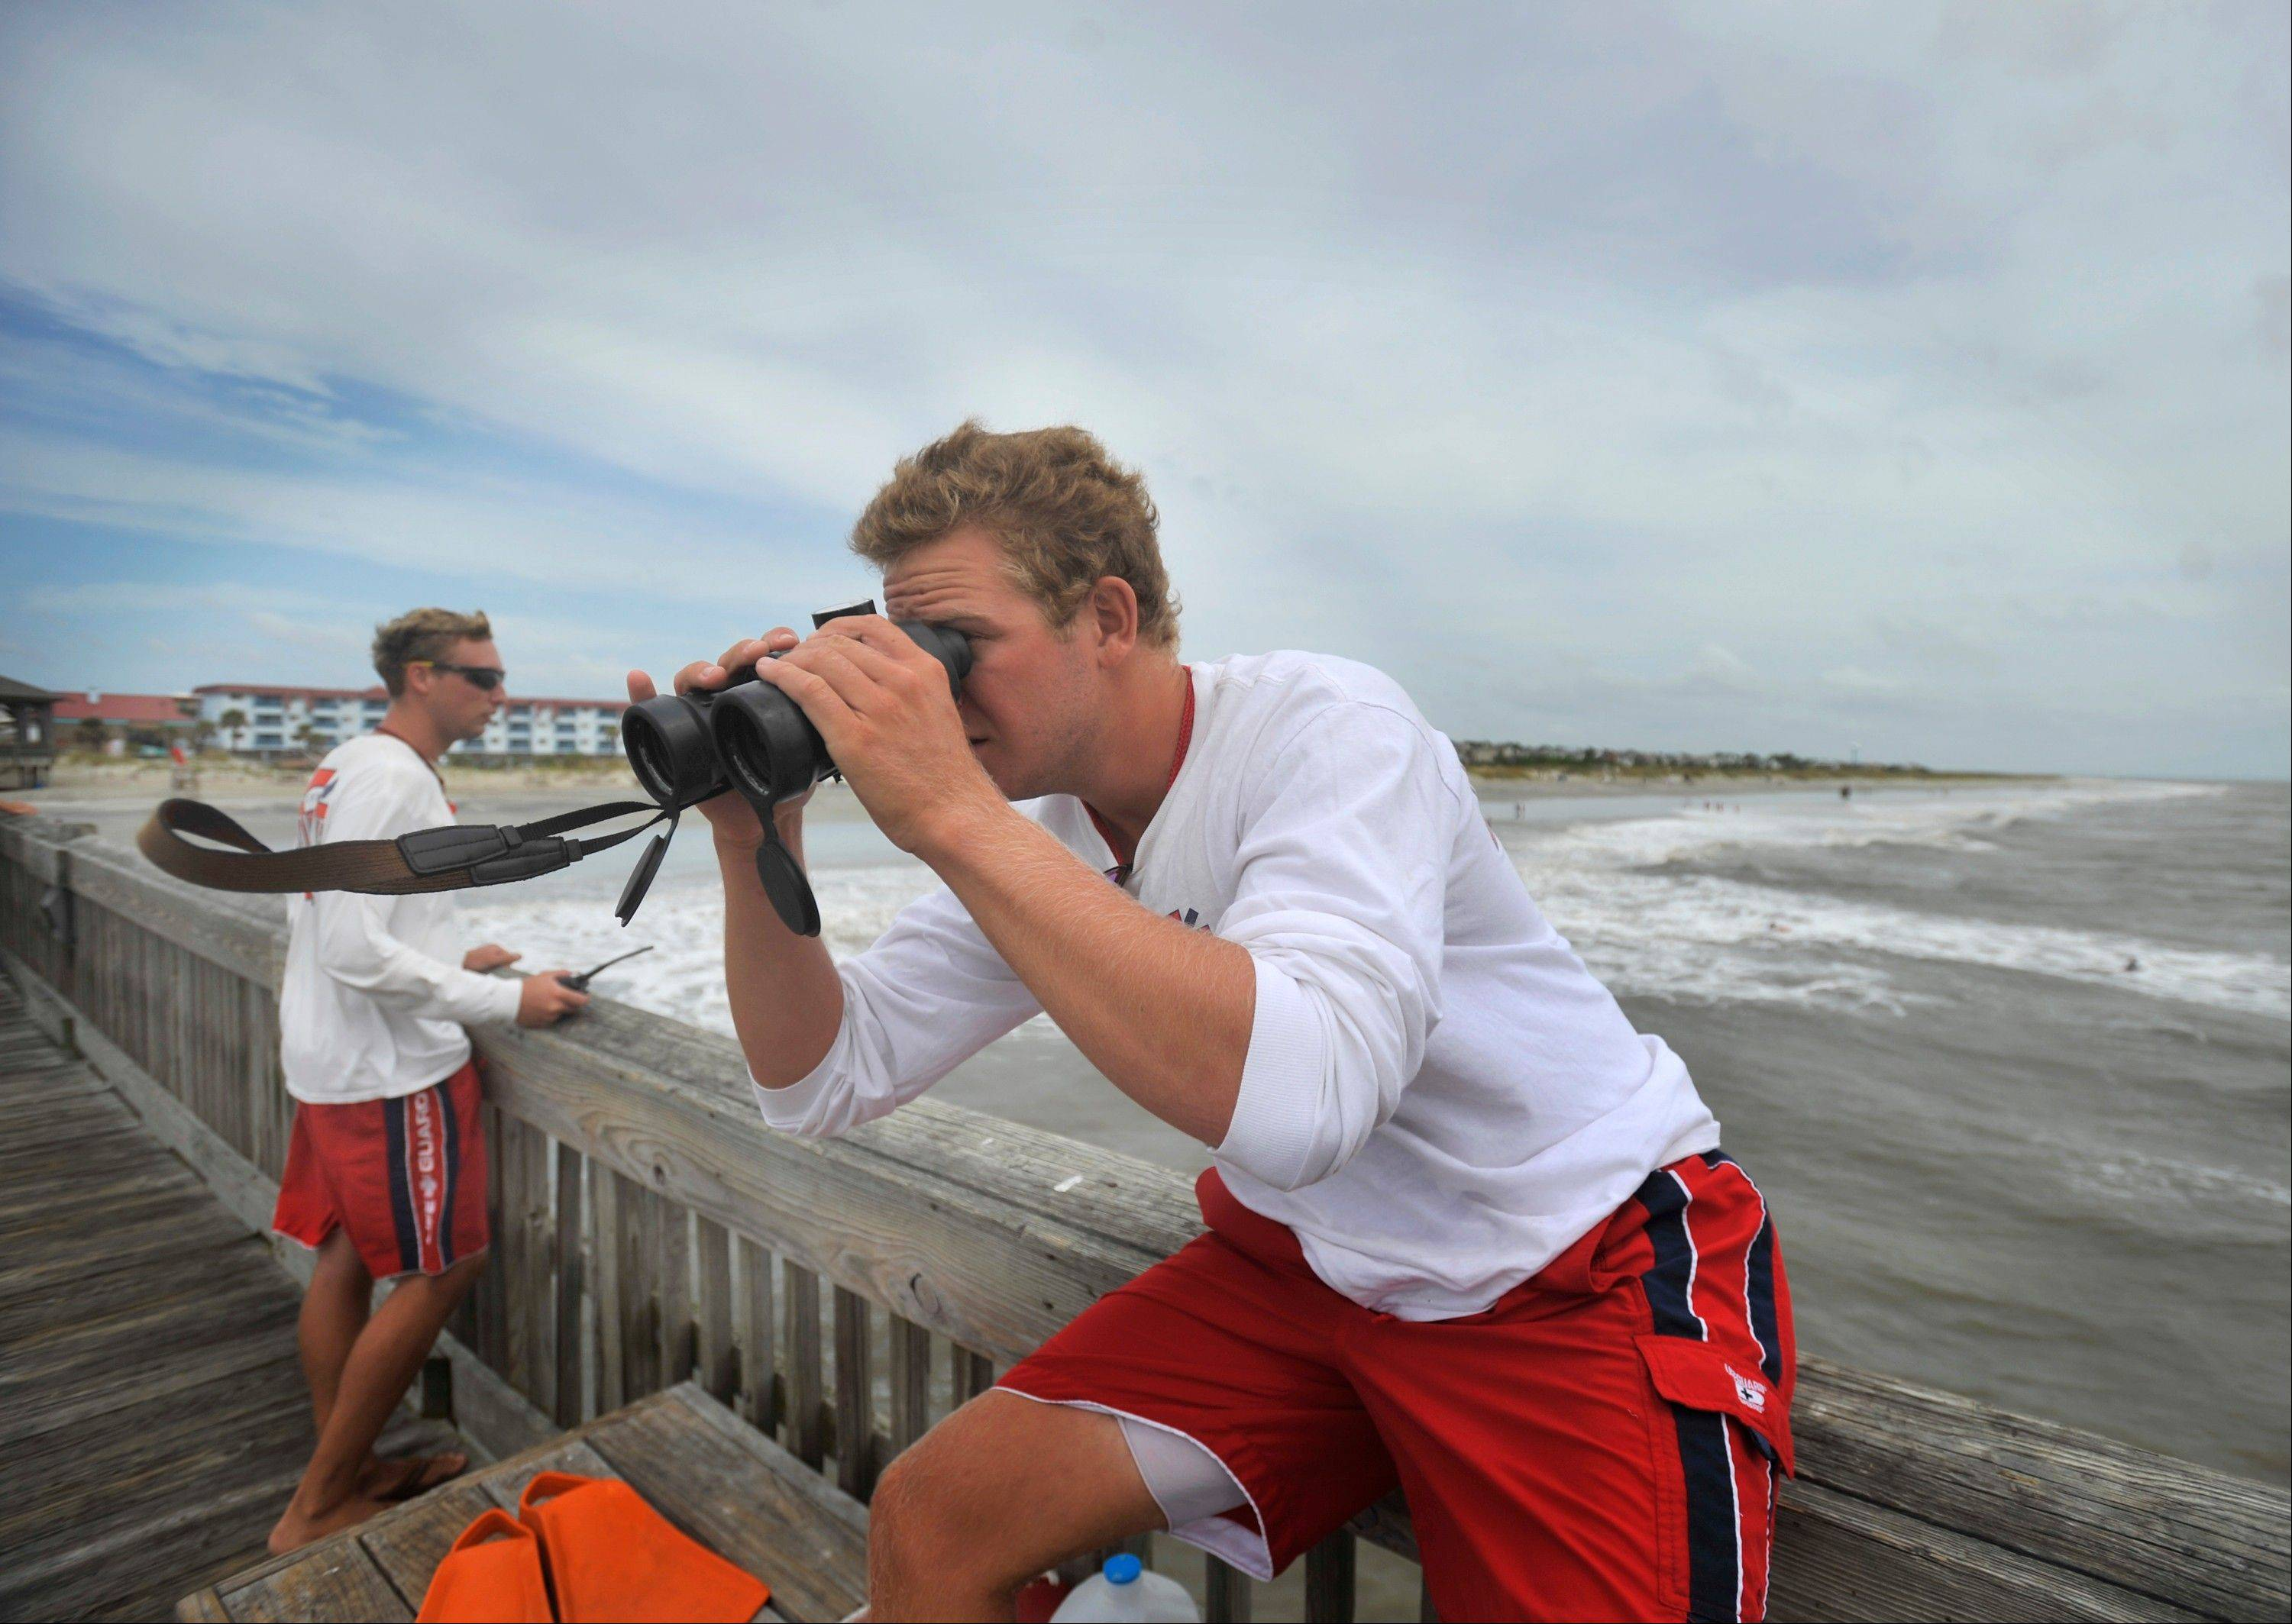 Tybee Island Ocean Rescue lifeguard Andrew Robinson watches surfers with a pair of binoculars after closing the water to swimmers from on the pier in Tybee Island, Ga., Friday, Aug. 26, 2011. Due to high waves and hazardous rip currents from the outer bands of Hurricane Irene, the lifeguards decided to close the water to swimmers. Surfers, kayakers and paddle boarders still brave the waves.